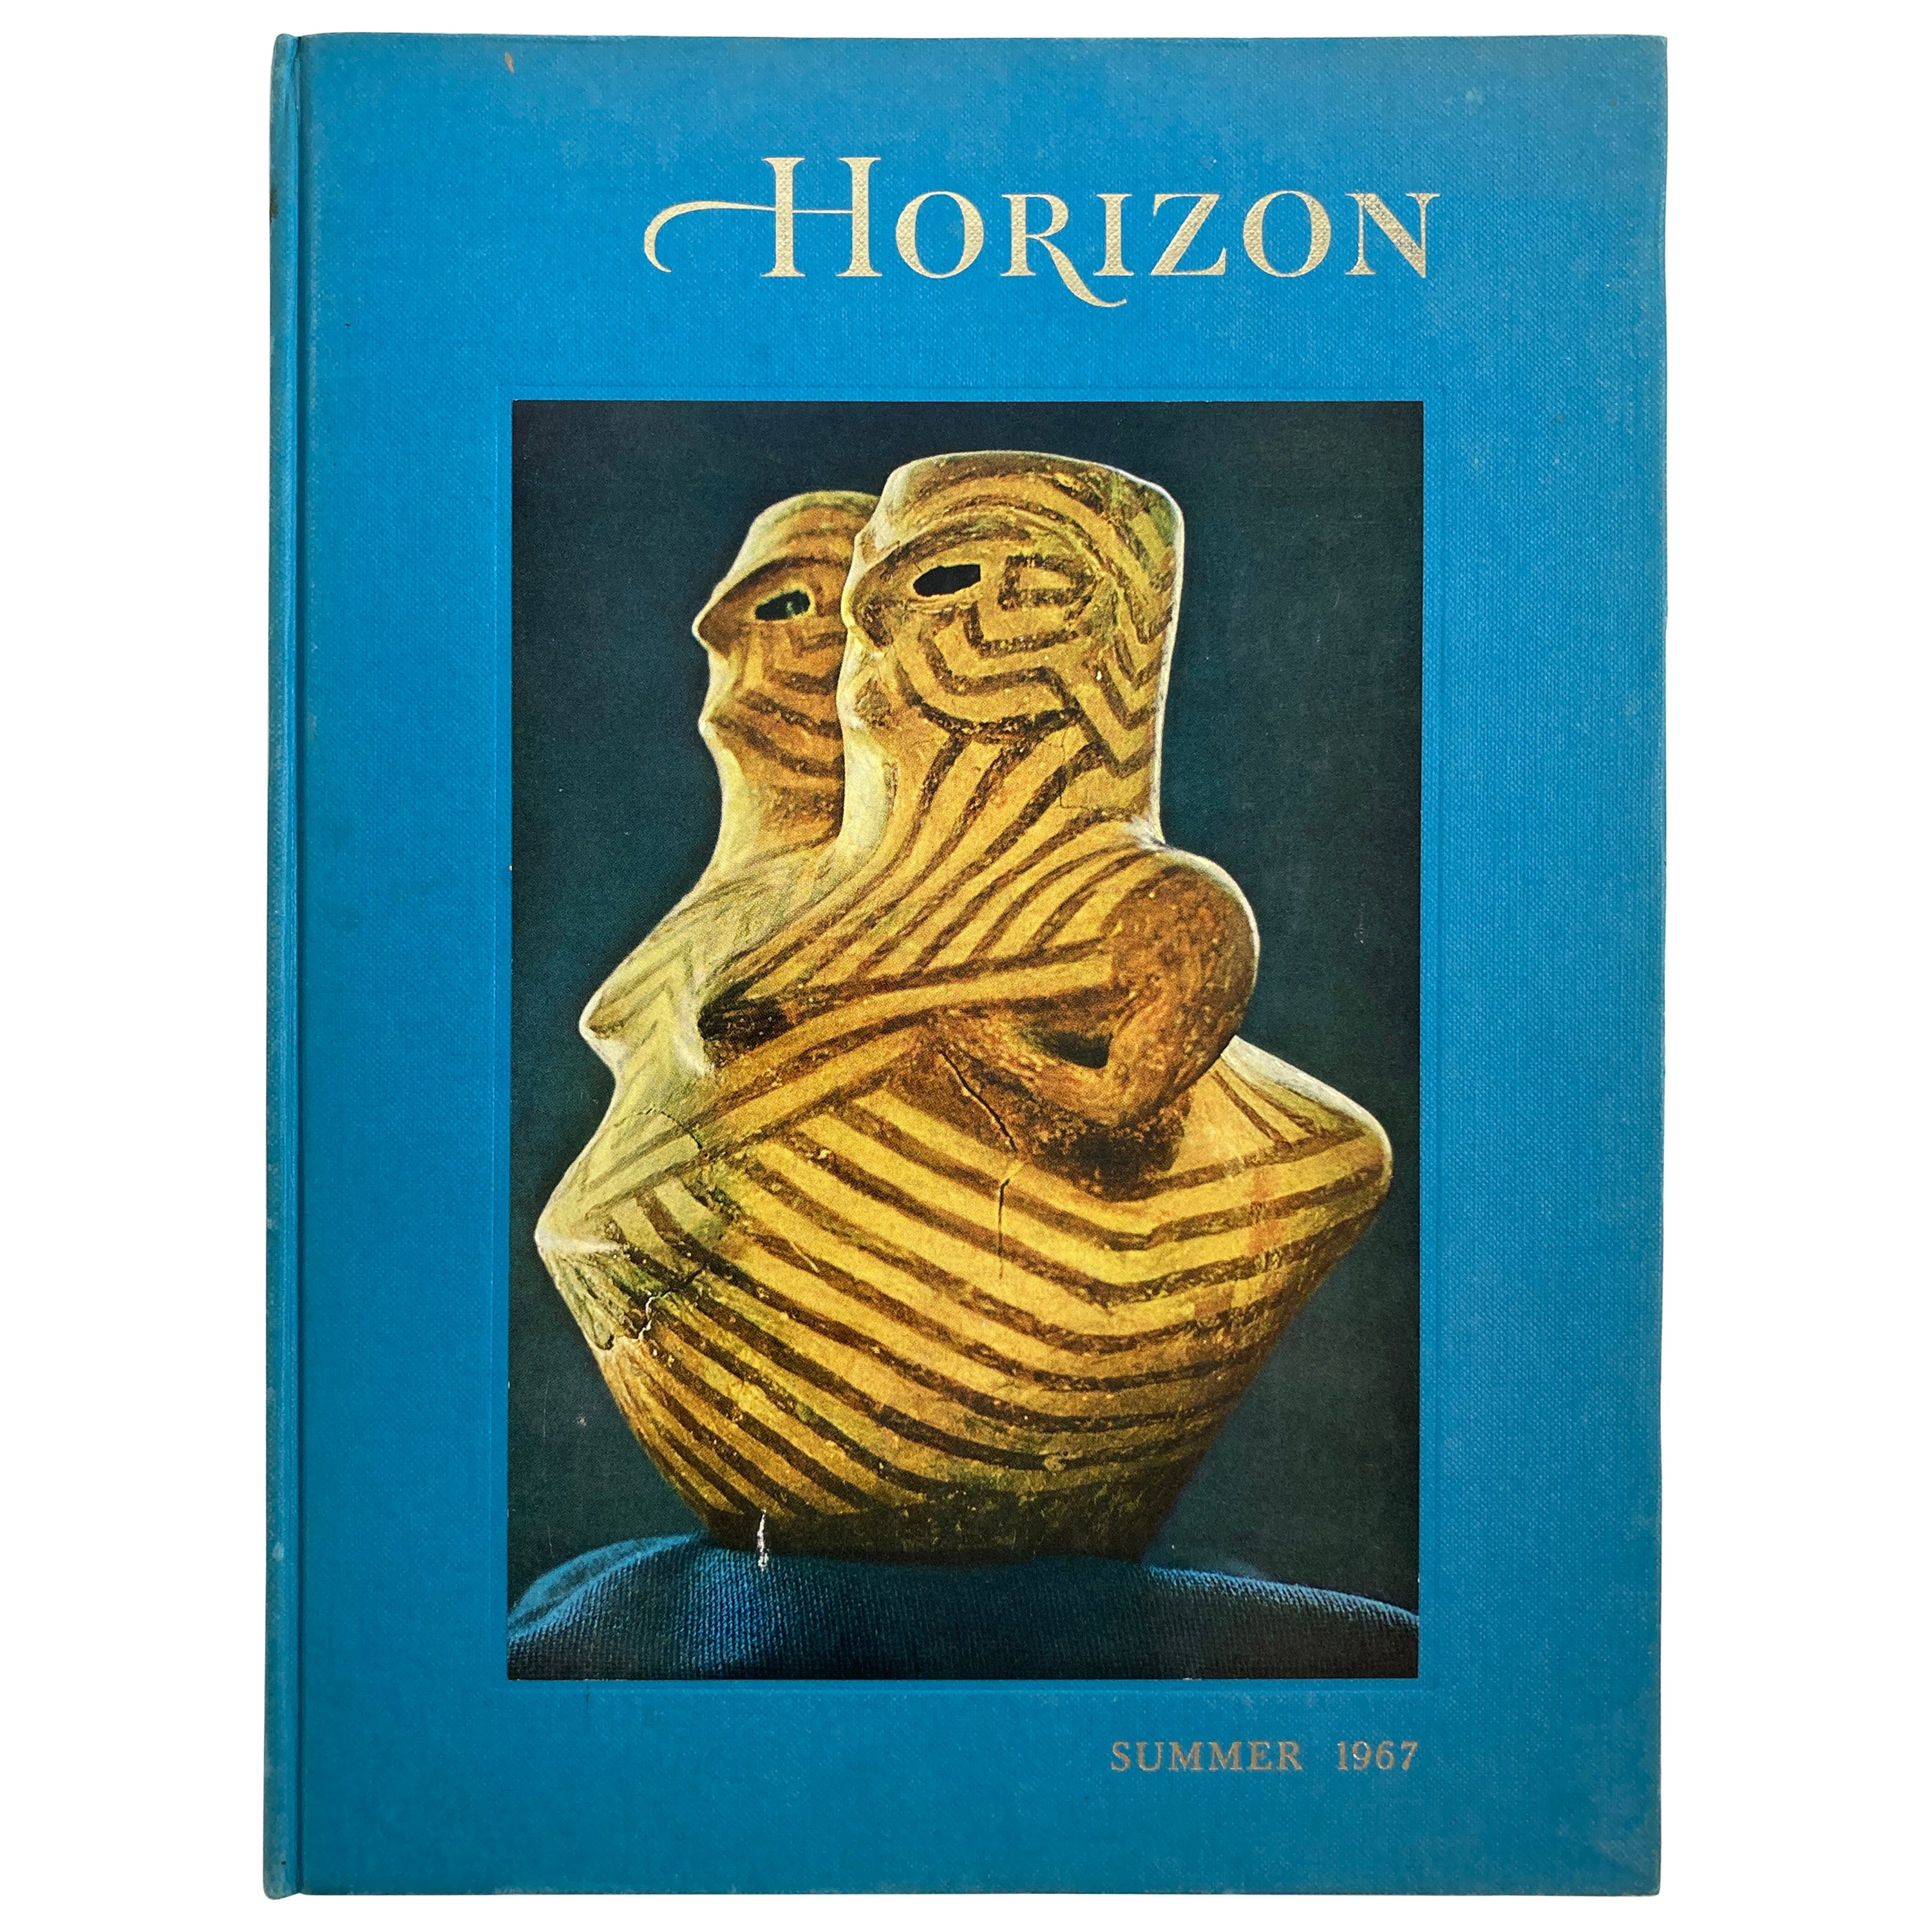 Horizon Magazine, A Magazine of the Arts, Summer 1967 Hardcover Book